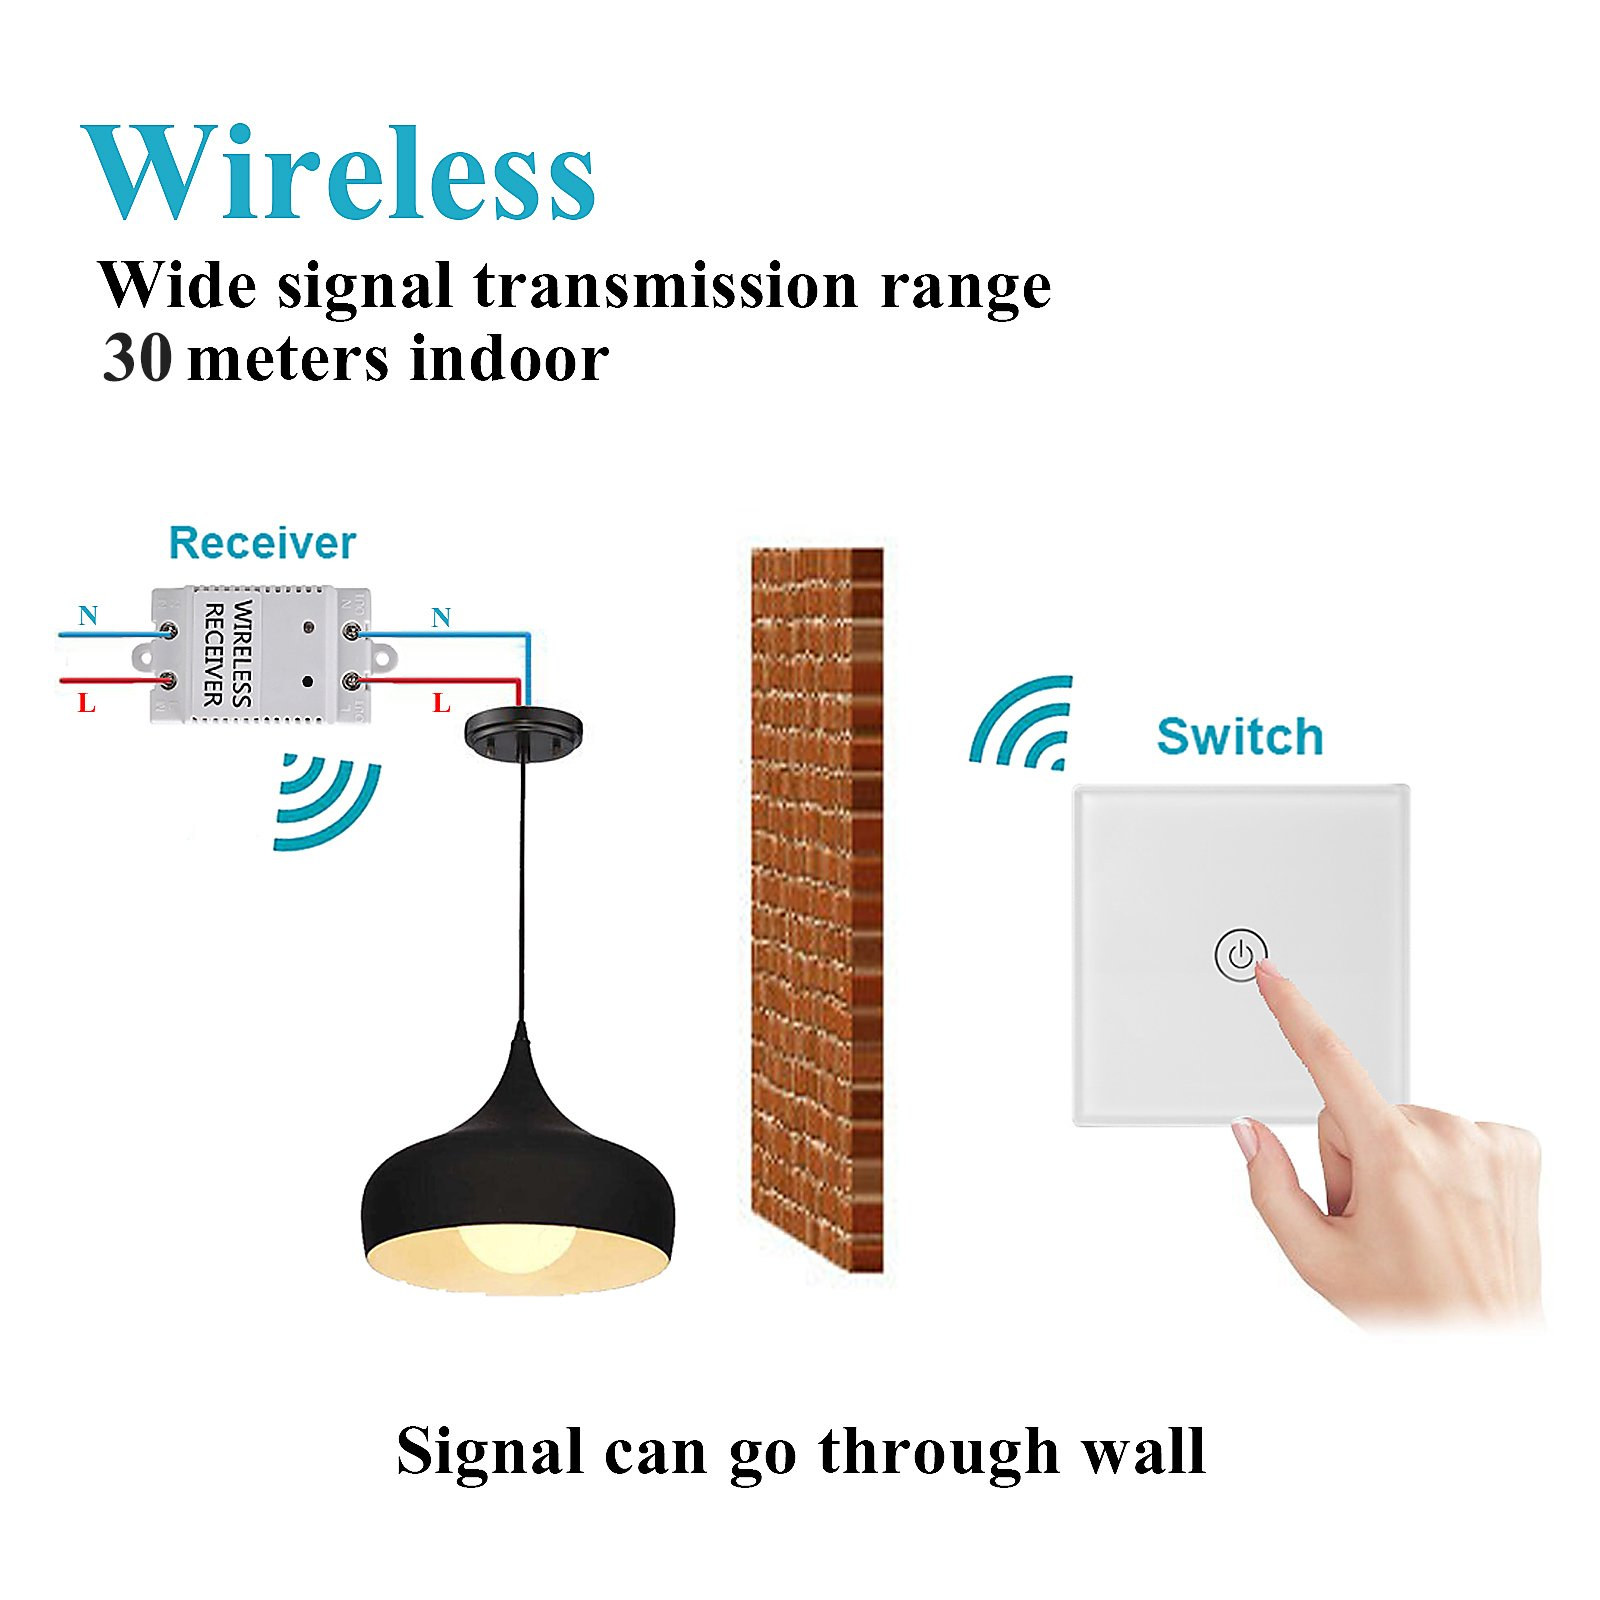 Wireless Light Switch and Receiver Kit Remote Control Ceiling Lamp LED Bulb Glass Panel Adhesive Tape Installation Touch Sensitive by MOUNTAIN_ARK (Image #2)